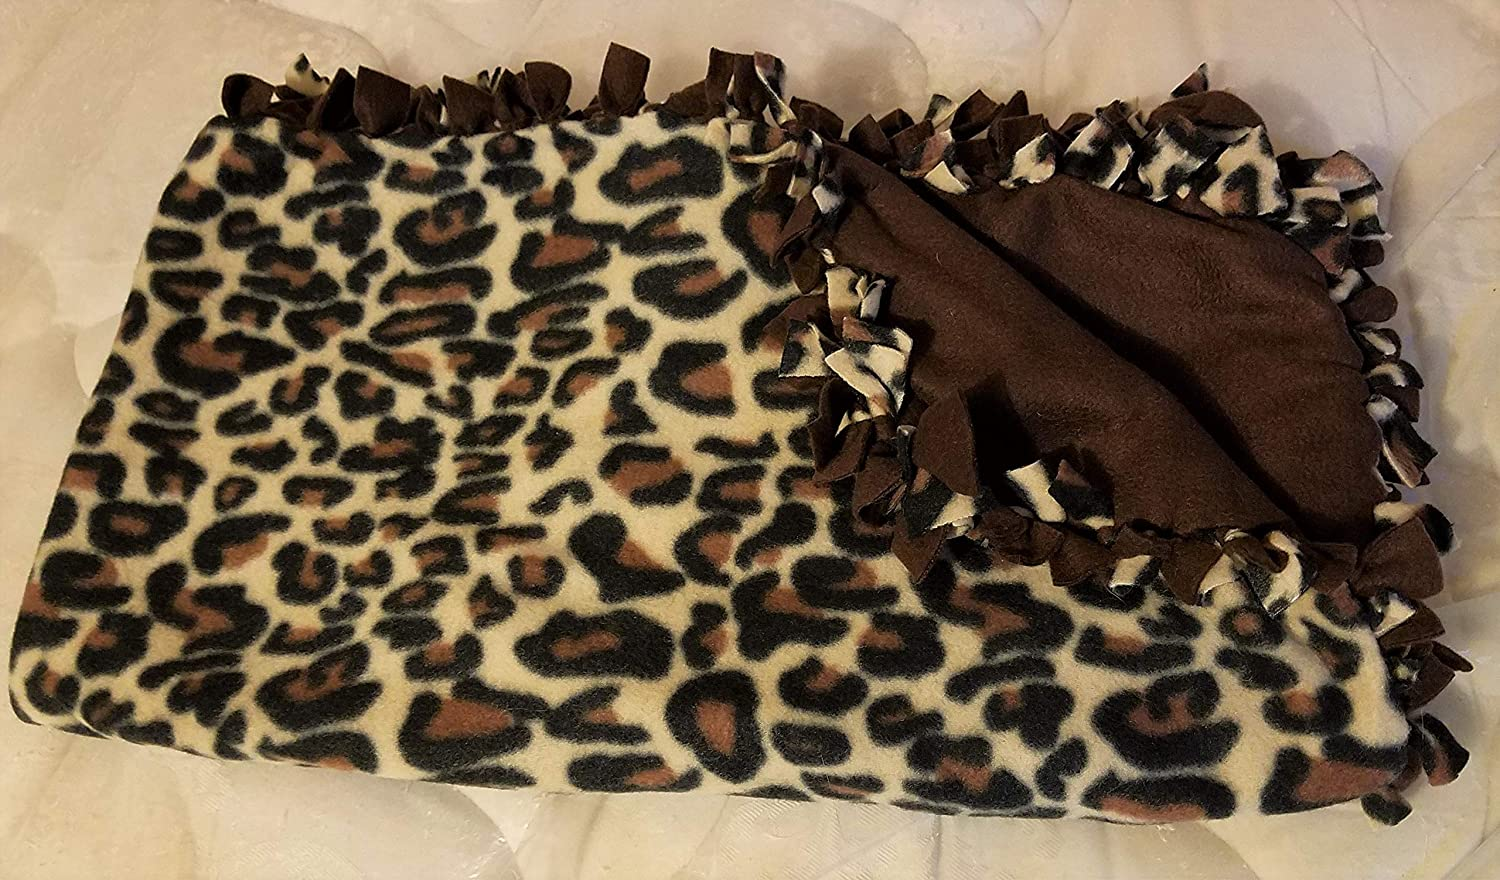 Medium Hand-Tied Fleece Pet Blanket (Cheetah)